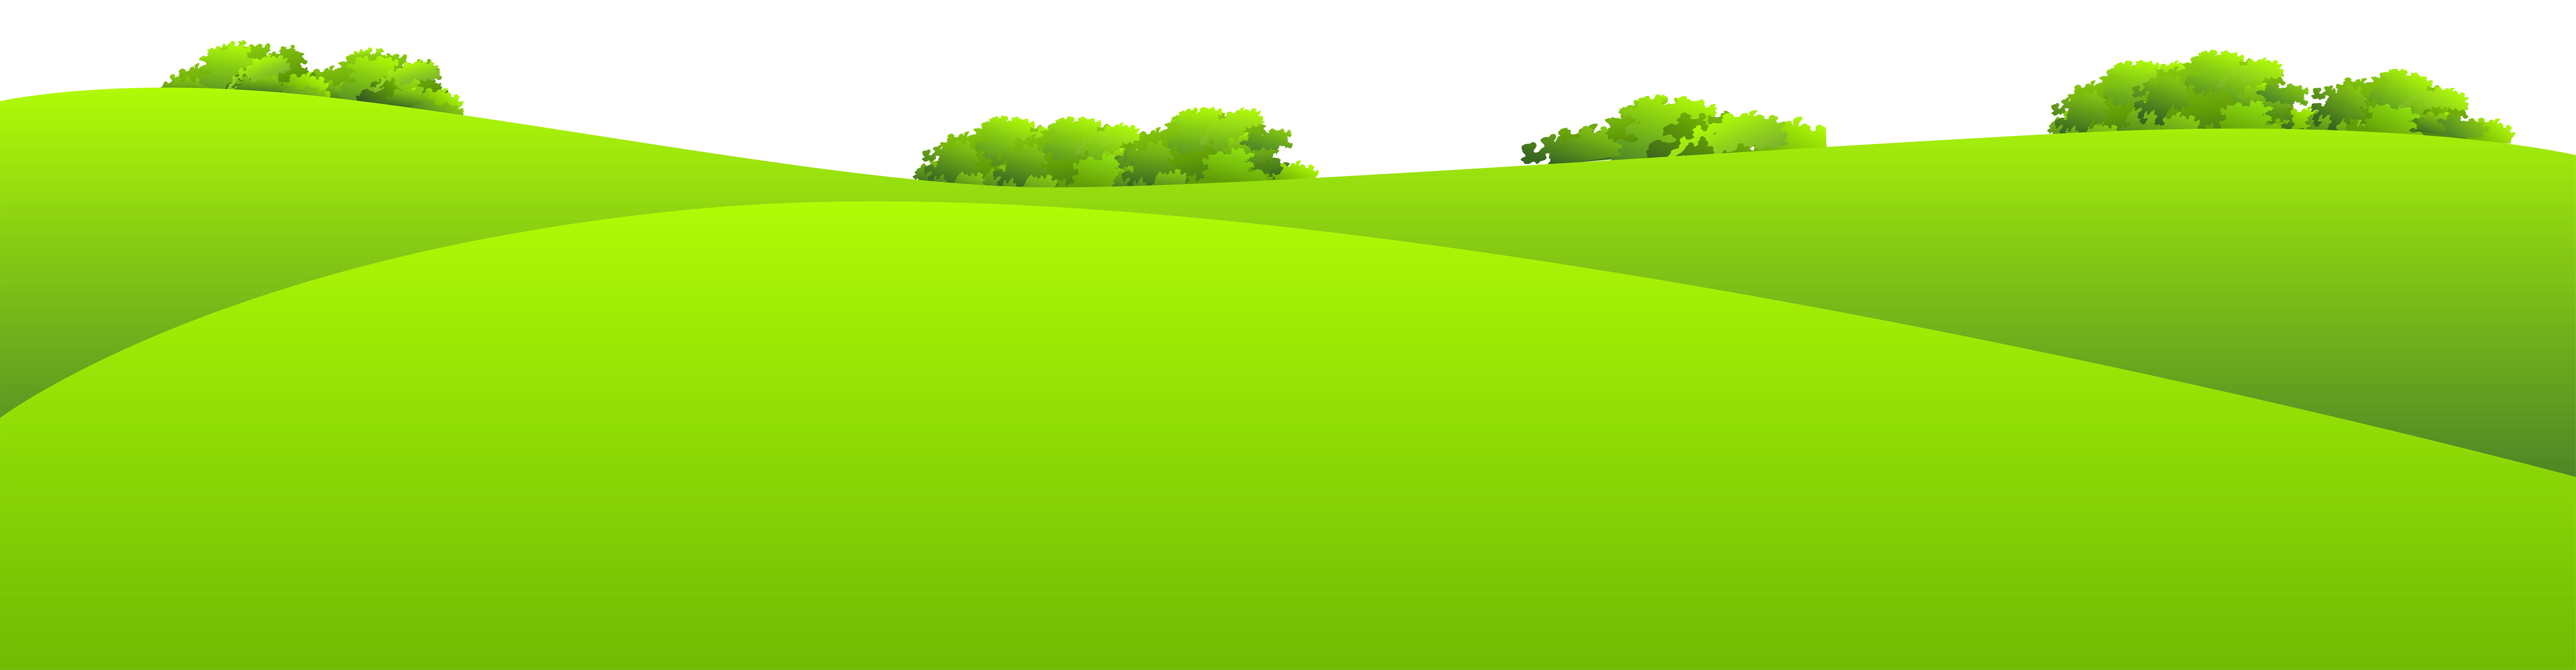 Green meadow with shrubs. Clipart grass sun